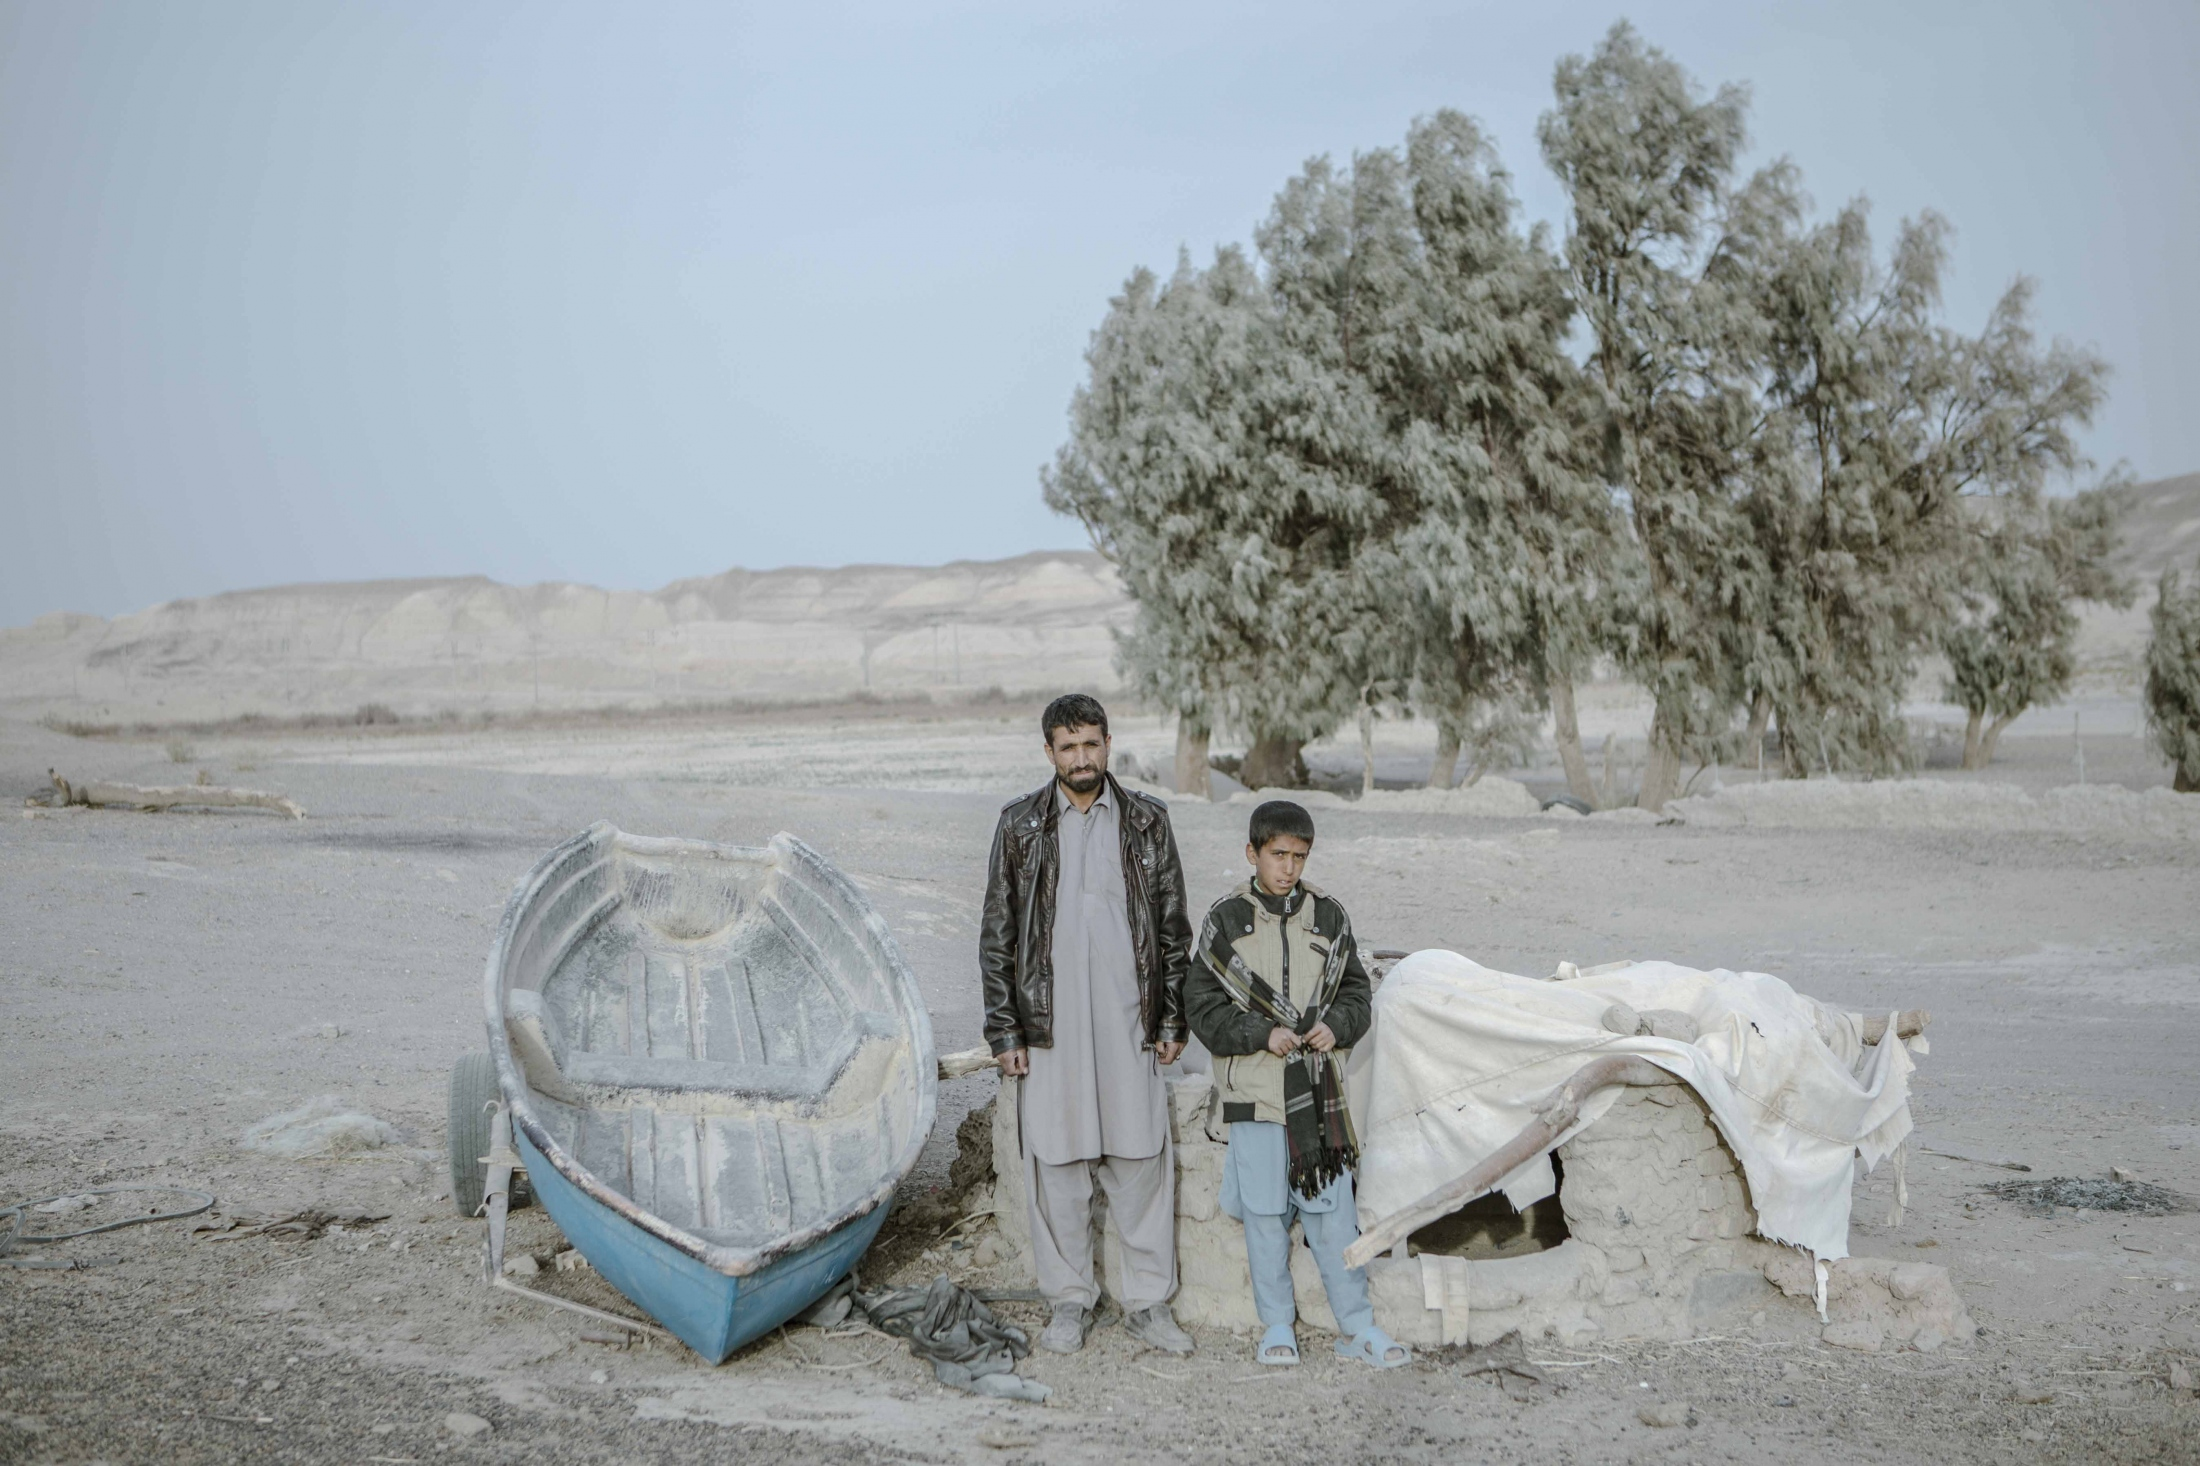 Father and son stand by the boat left in Hamun arid land.40 Mohammed was a farmer and fisherman before dry up of Hamun Lake.now the only job left for him is animal husbandry. After the complete disruption of the water from the Hirmand River in Afghanistan, which led to an increase in the severity of the drought in Iran, the people of the area lost their agricultural activities. The farmlands have now become a wasteland. Also, with the drying up of the Hamun wetlands, fishing in the area, which was one of the indigenous businesses in the area, has completely disappeared. The abandoned boats in this dried-up wetland indicate a very bad and critical situation of the region.Qorqori Rural District.Sistan Province.Iran.2018